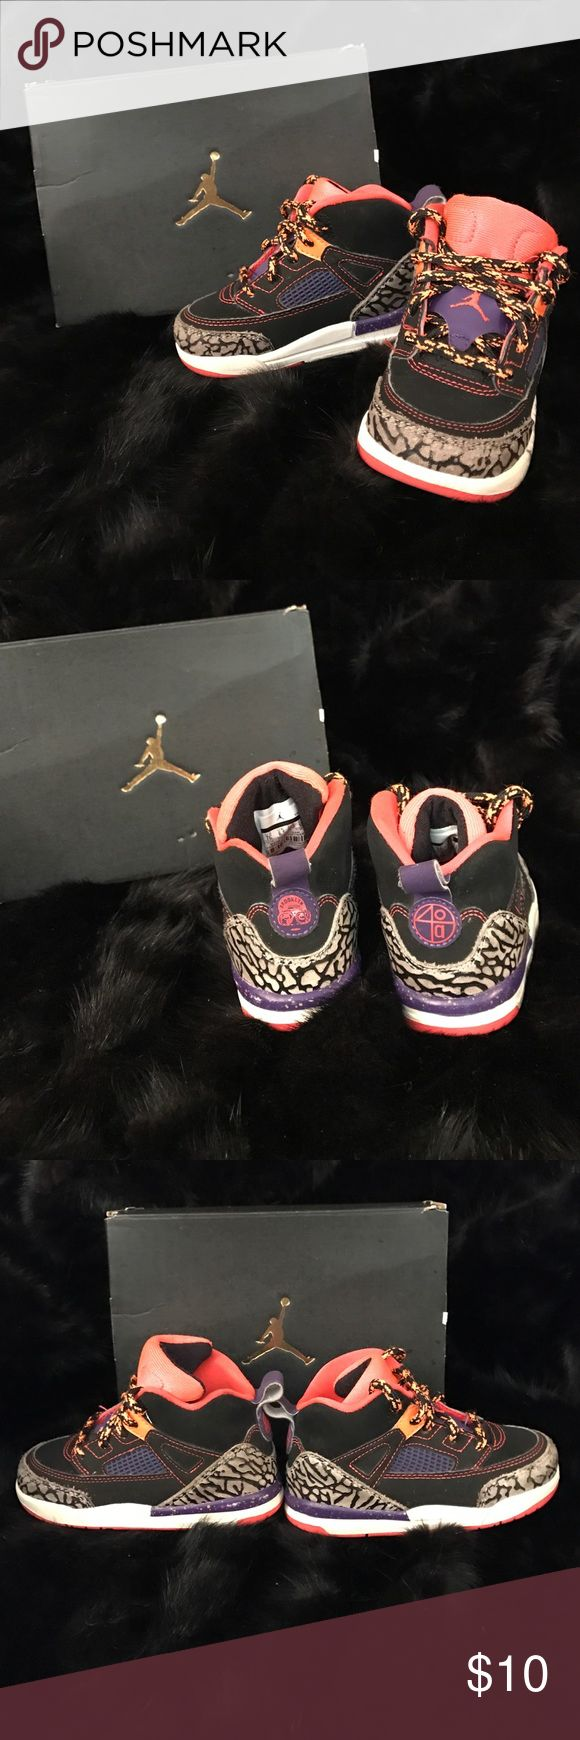 "Jordan Spizike LIMITED EDITION Looney Tunes ""Taz"" Slight wearing on the toe but not major. Sneakers are in great condition. Not at all abused. 100% authentic Jordan Shoes Sneakers"